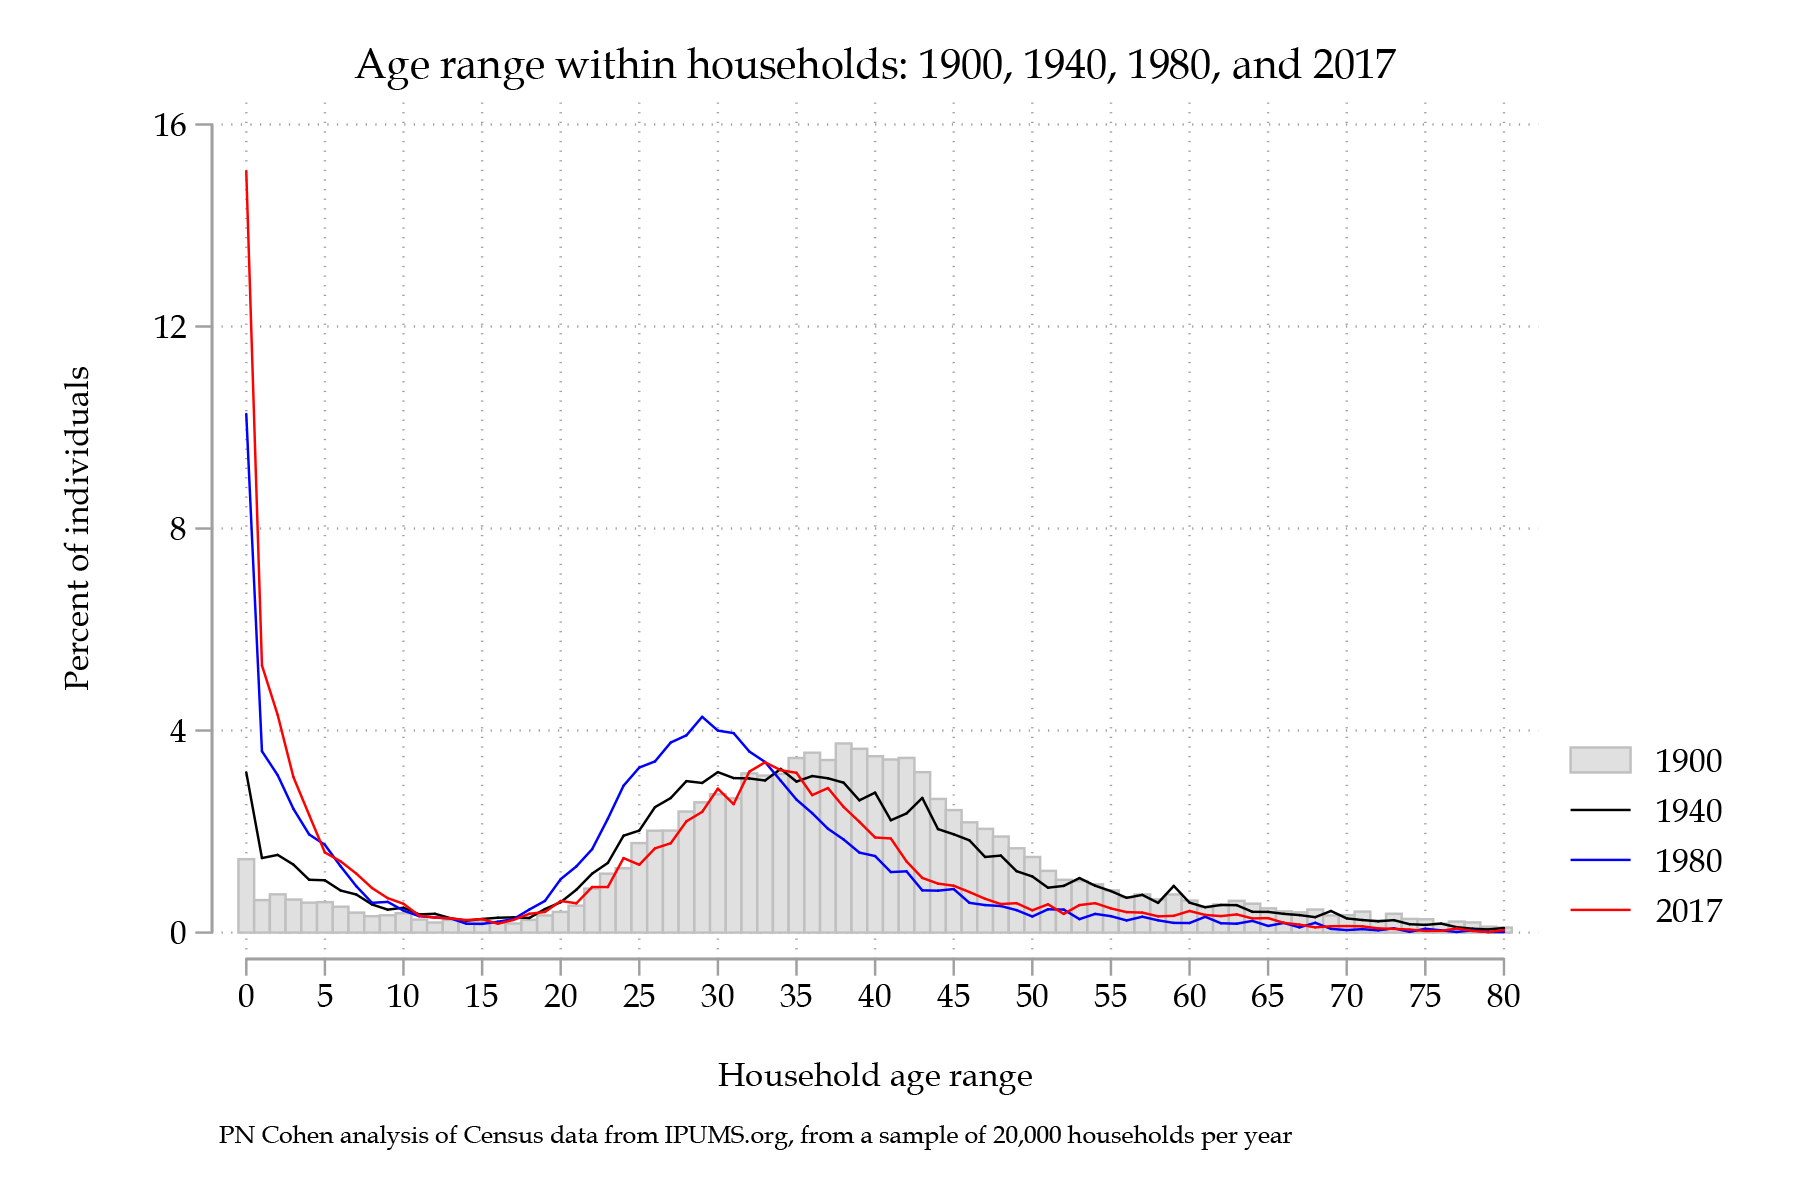 household age range